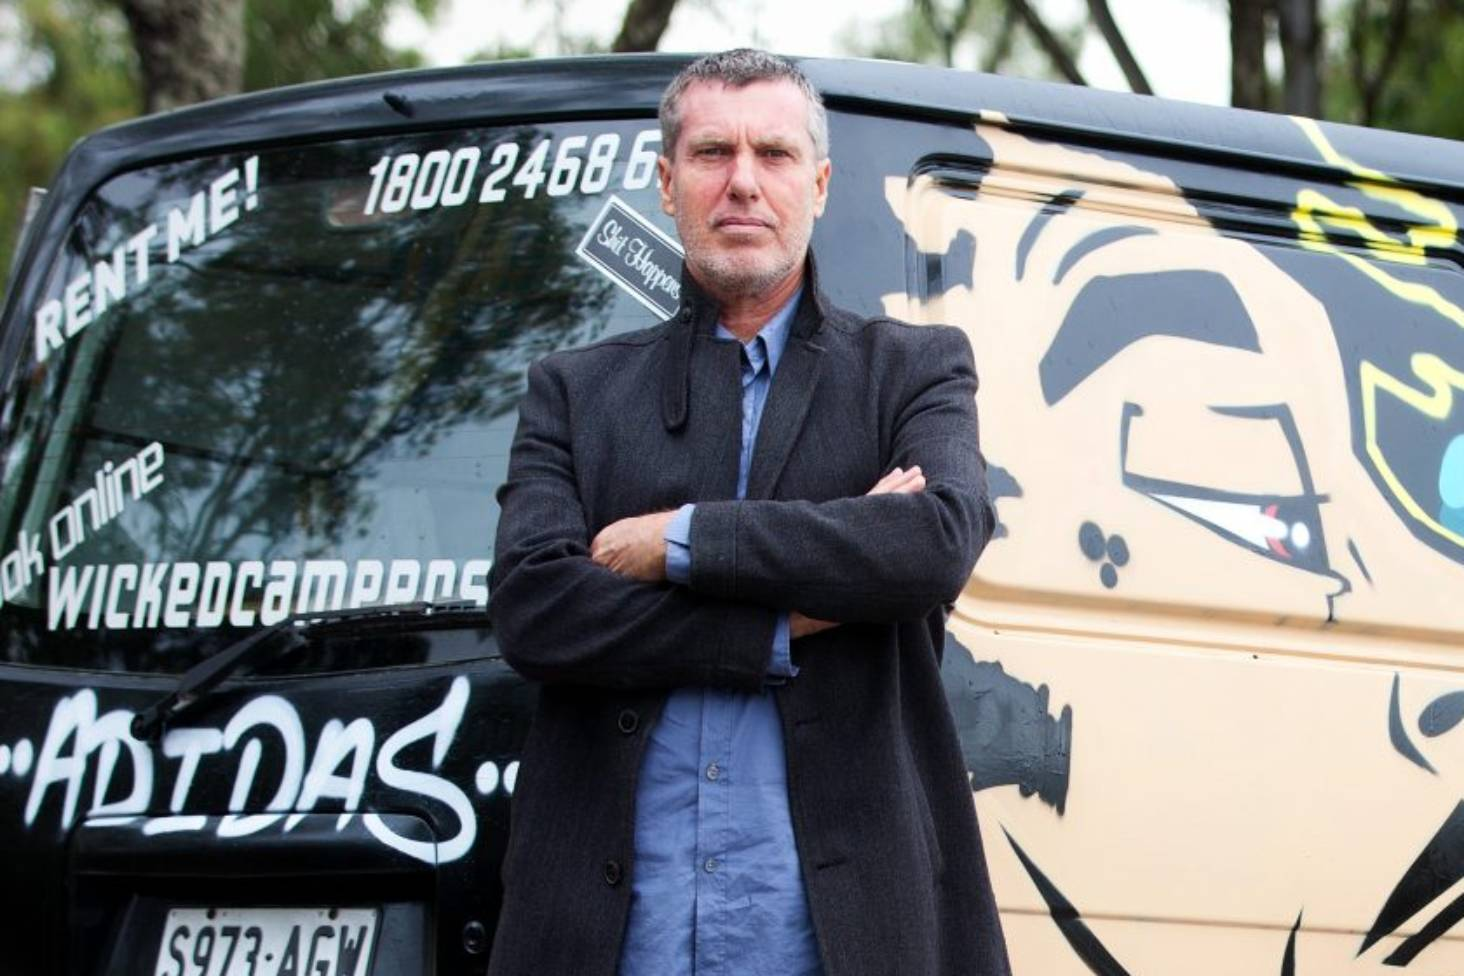 Wicked Campers slogan outrage continues, Mr Wicked nowhere to be